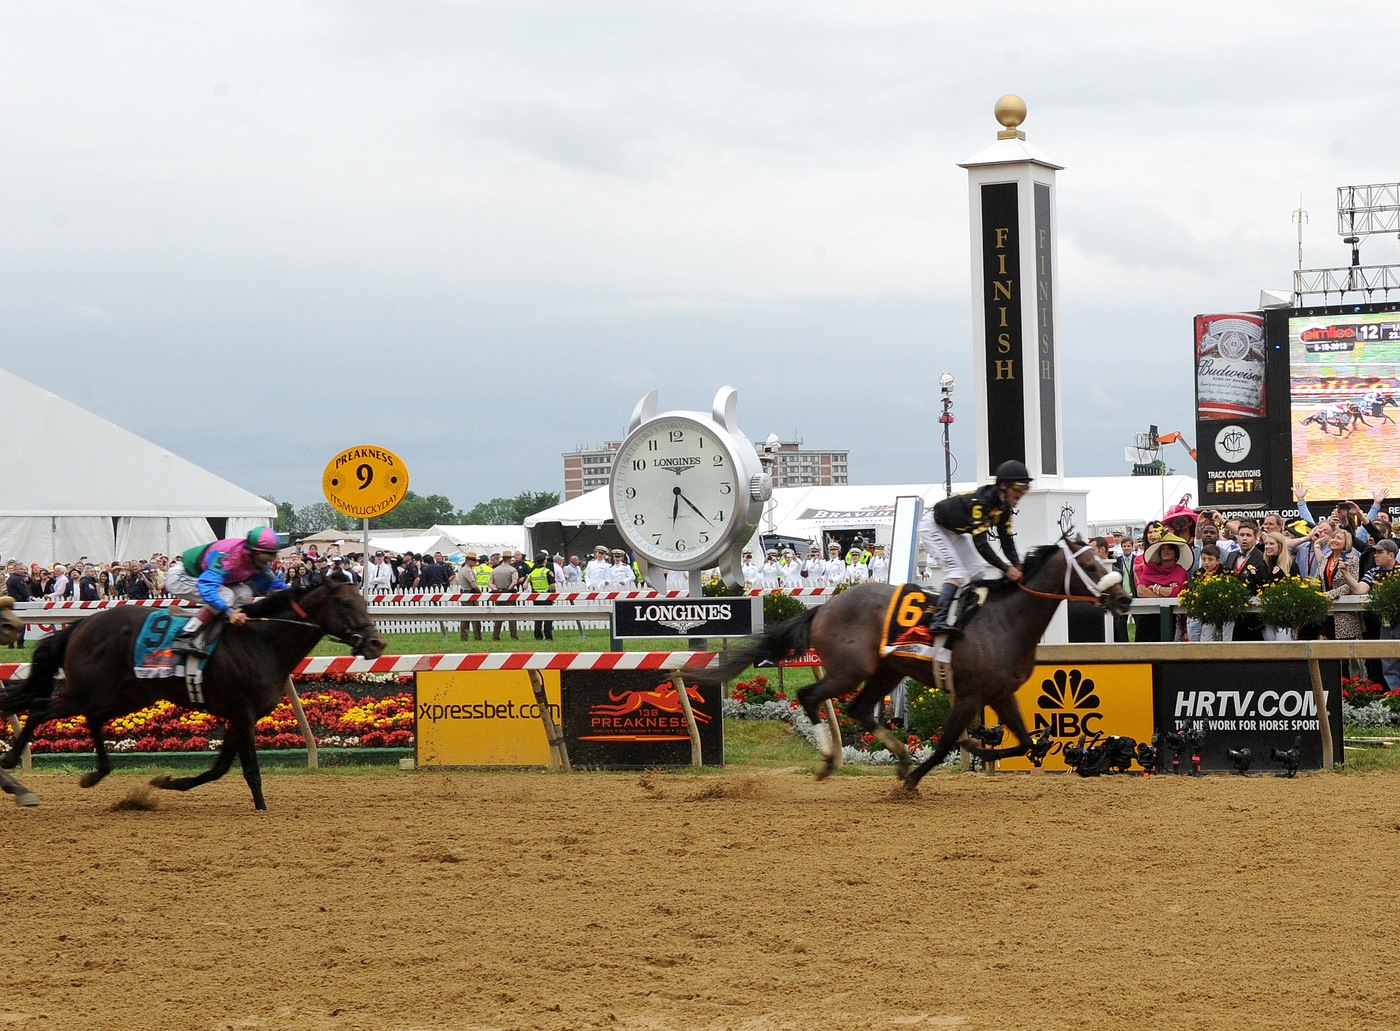 Longines Flat Racing Event: Longines awards luxury timepieces to owner, trainer and jockey of Preakness Stakes winner, Oxbow 1